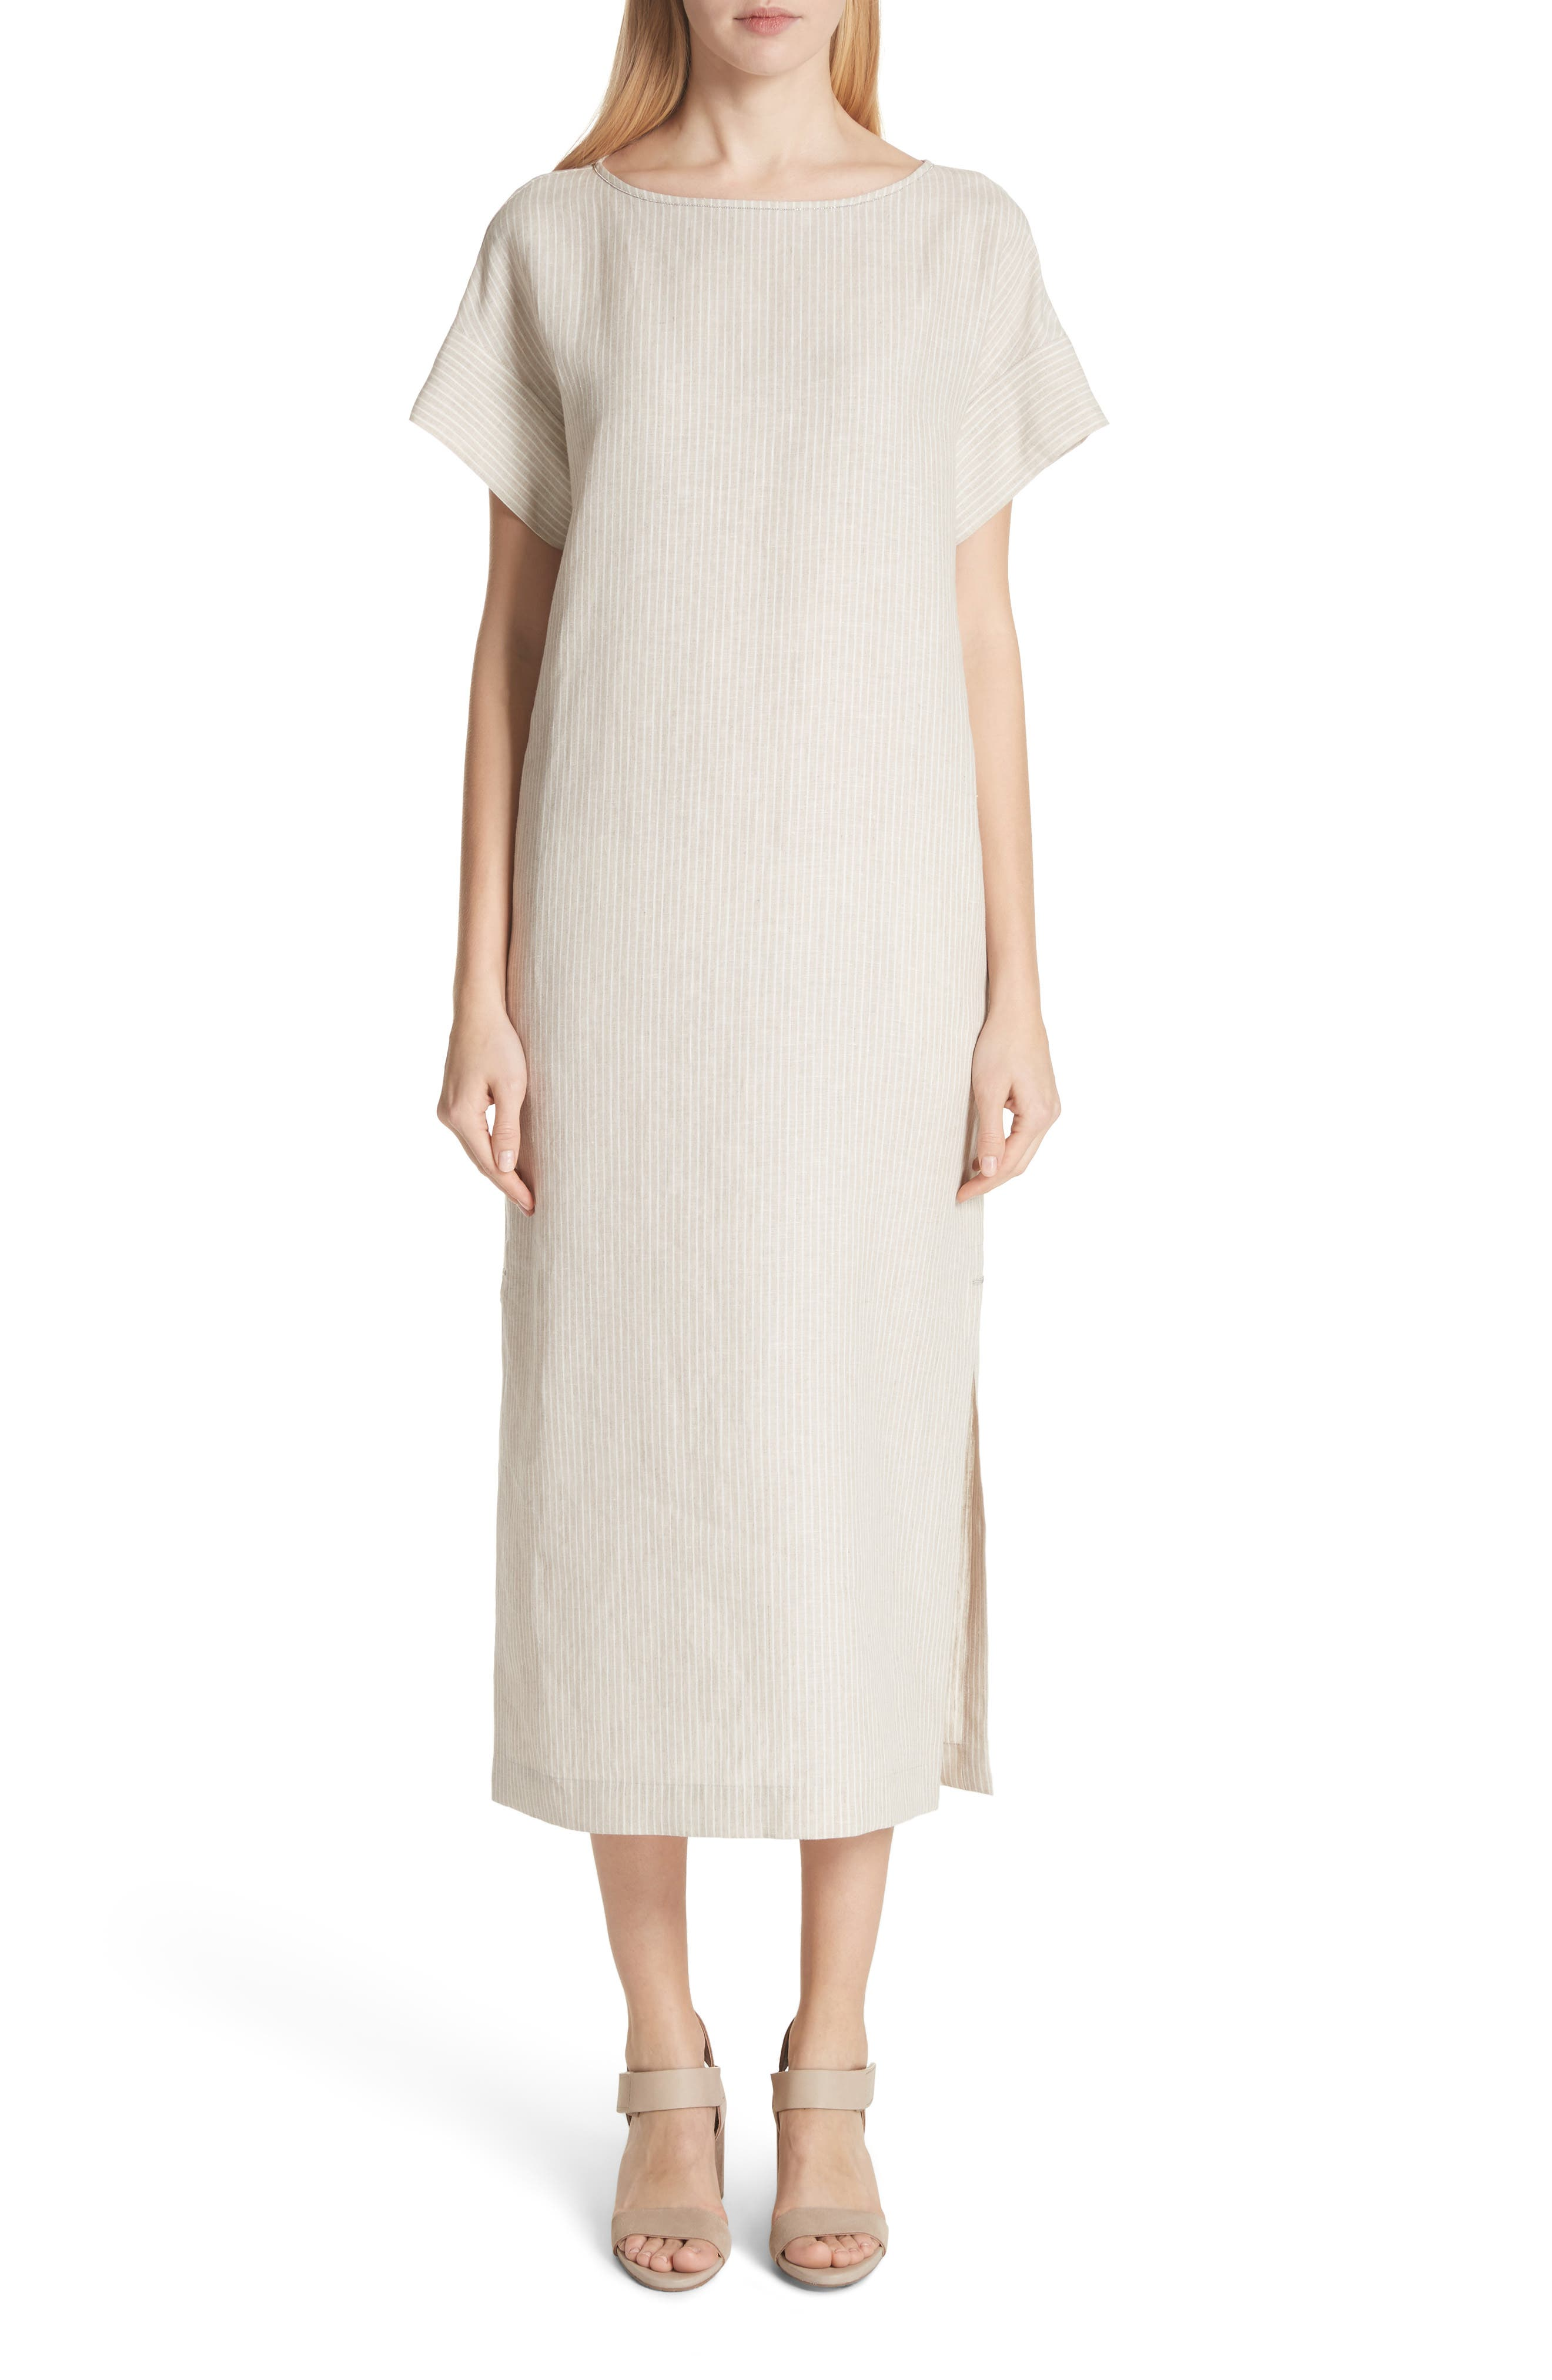 Emiline Stripe Linen Dress,                             Main thumbnail 1, color,                             Tahini Multi